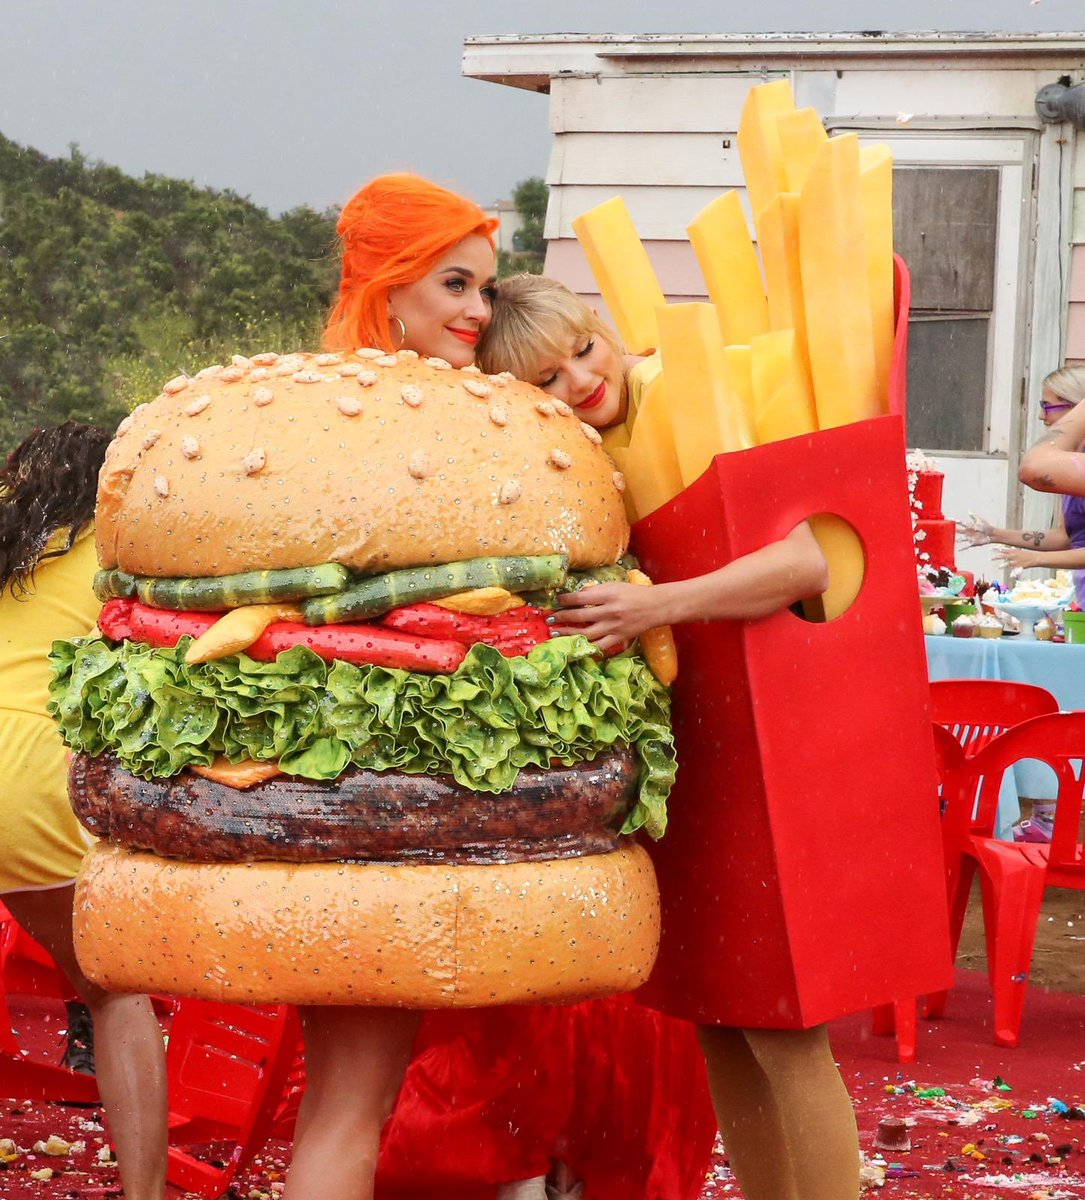 This meal is BEEF-free #MeatFreeMonday ????♥️???? #YNTCDmusicvideo  https://t.co/m2kA0mZgQe https://t.co/yKYmnTxBy5